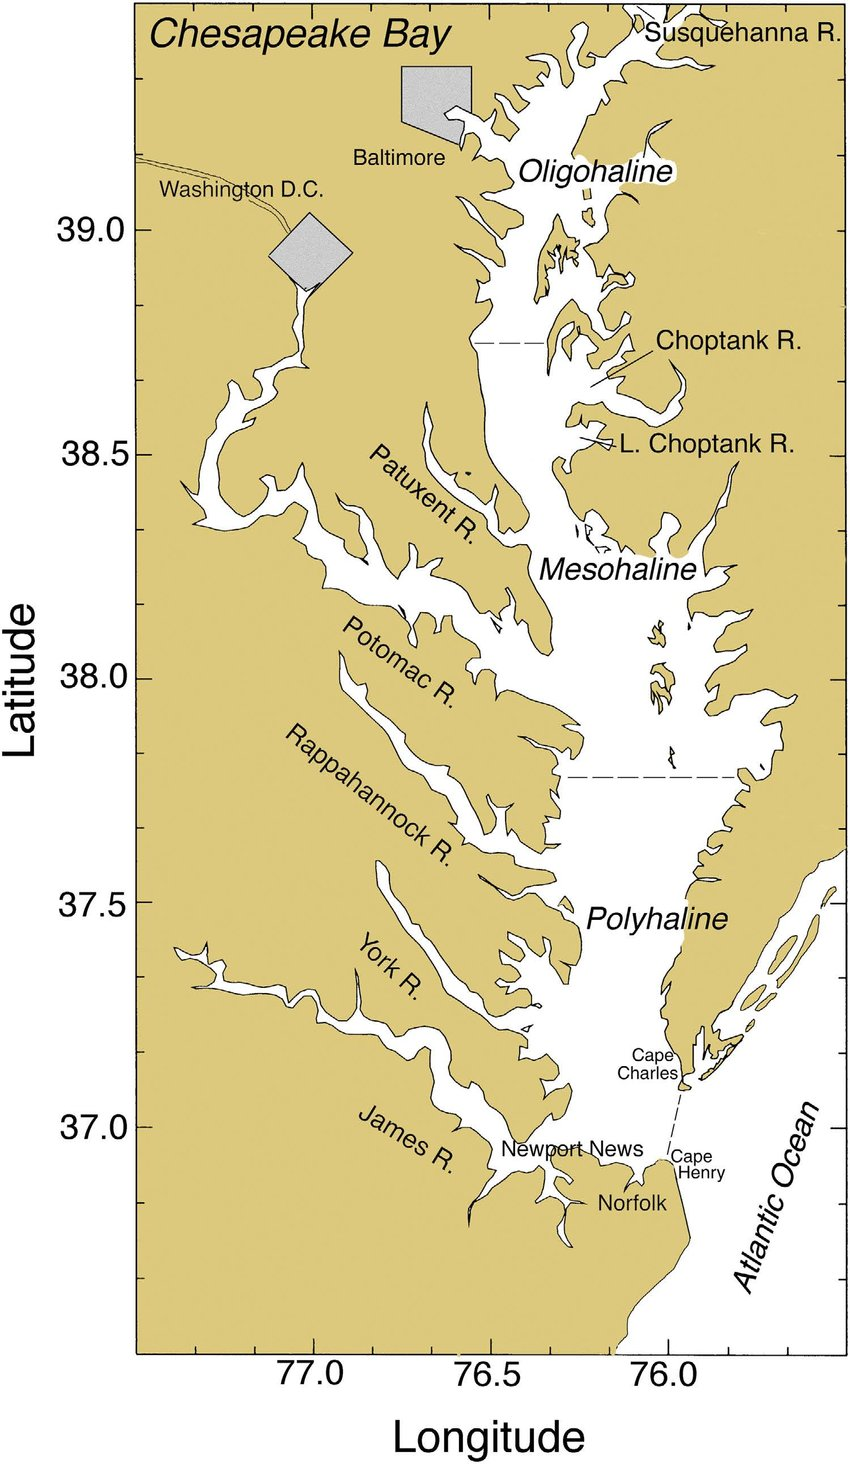 hight resolution of chesapeake bay showing major rivers cities salinity zones and sampling stations for pigments